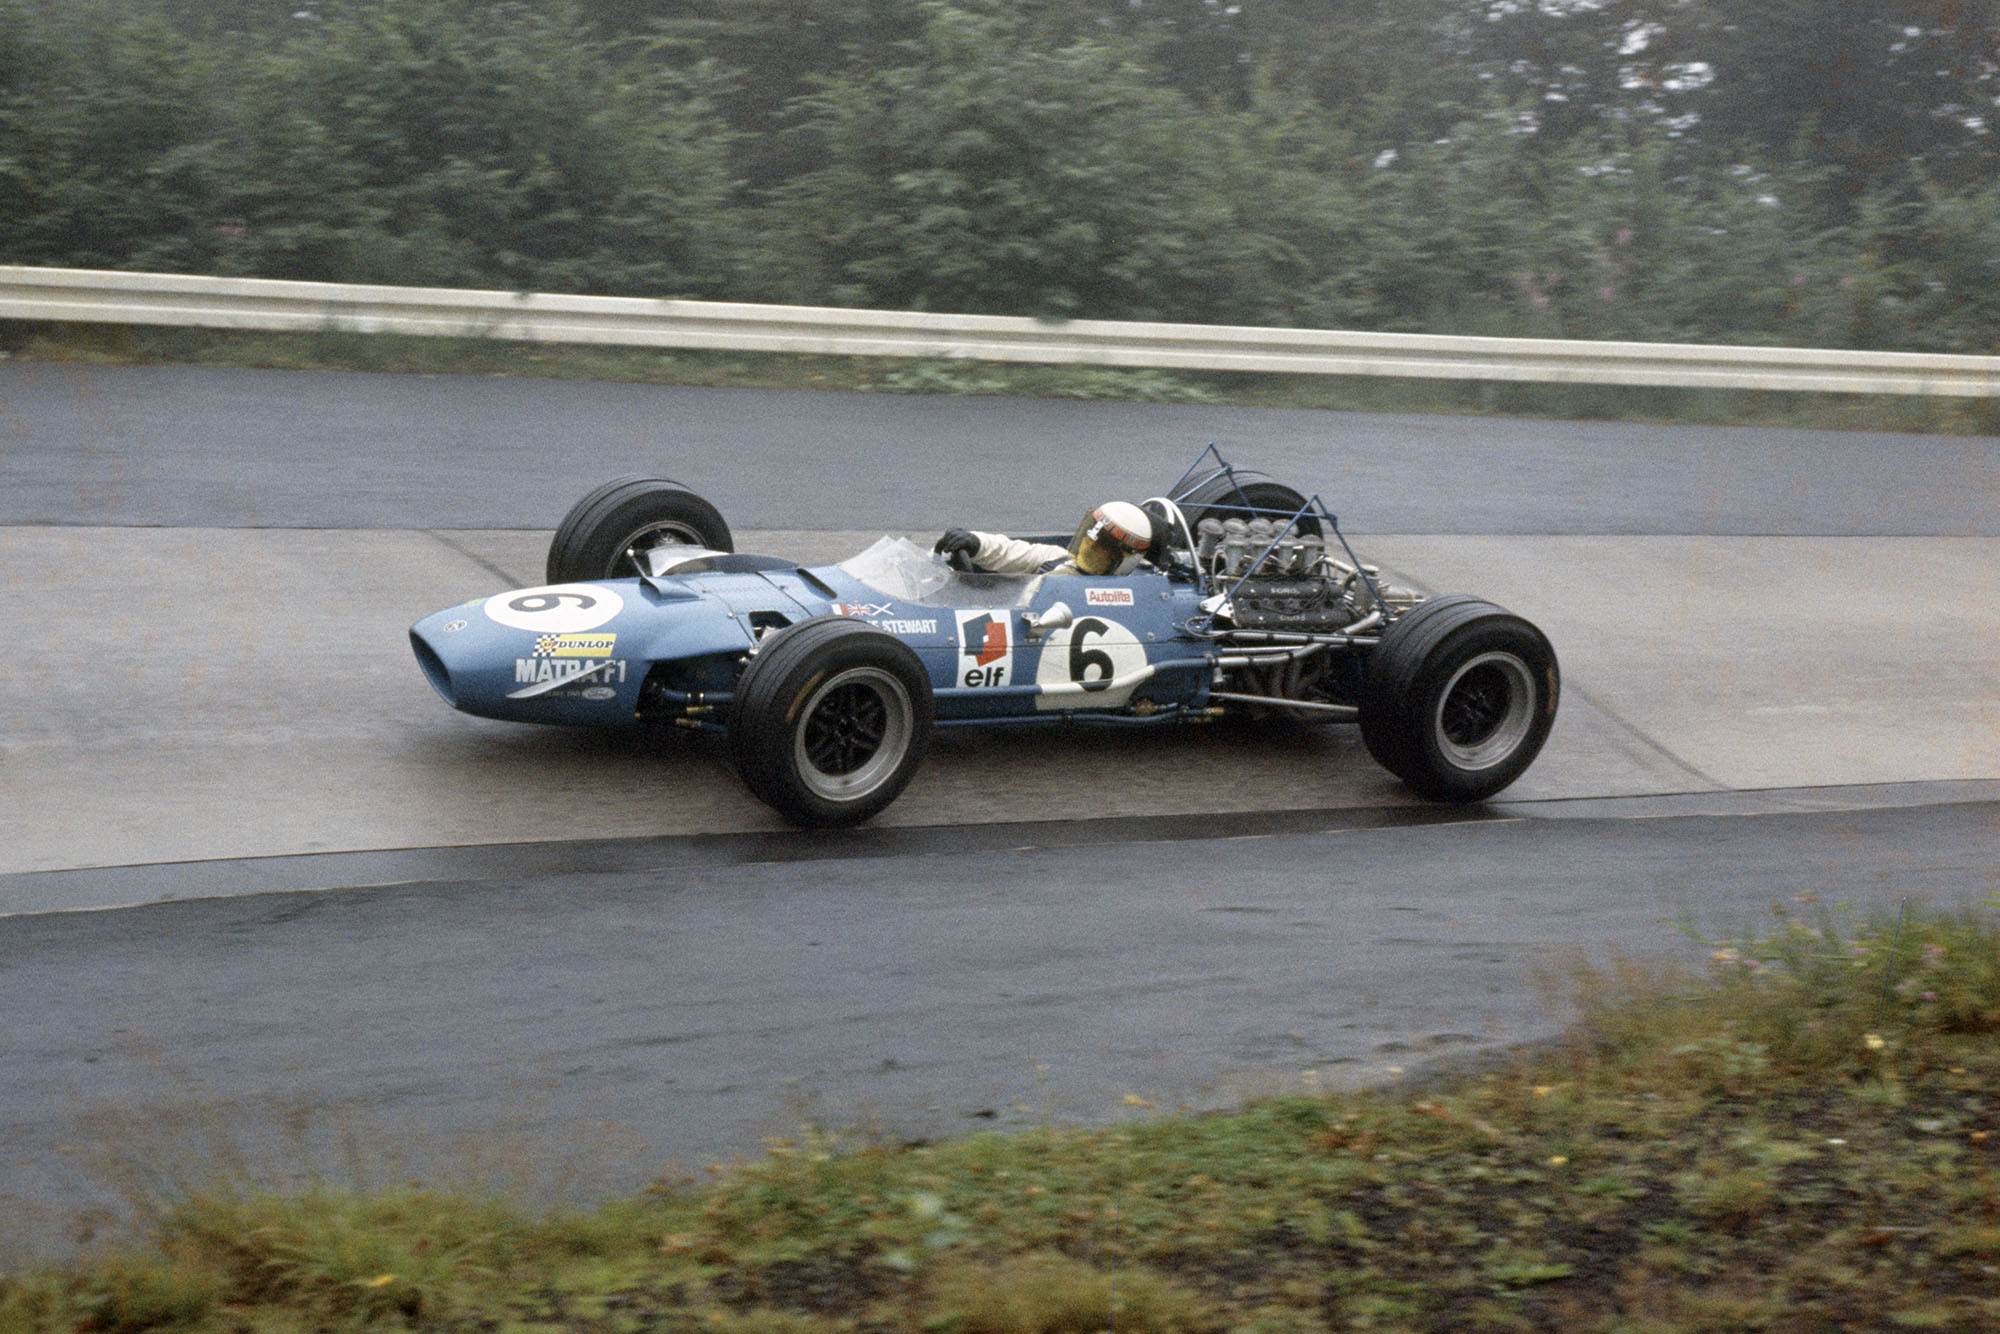 Jackie Stewart (Matra MS10-Ford Cosworth)